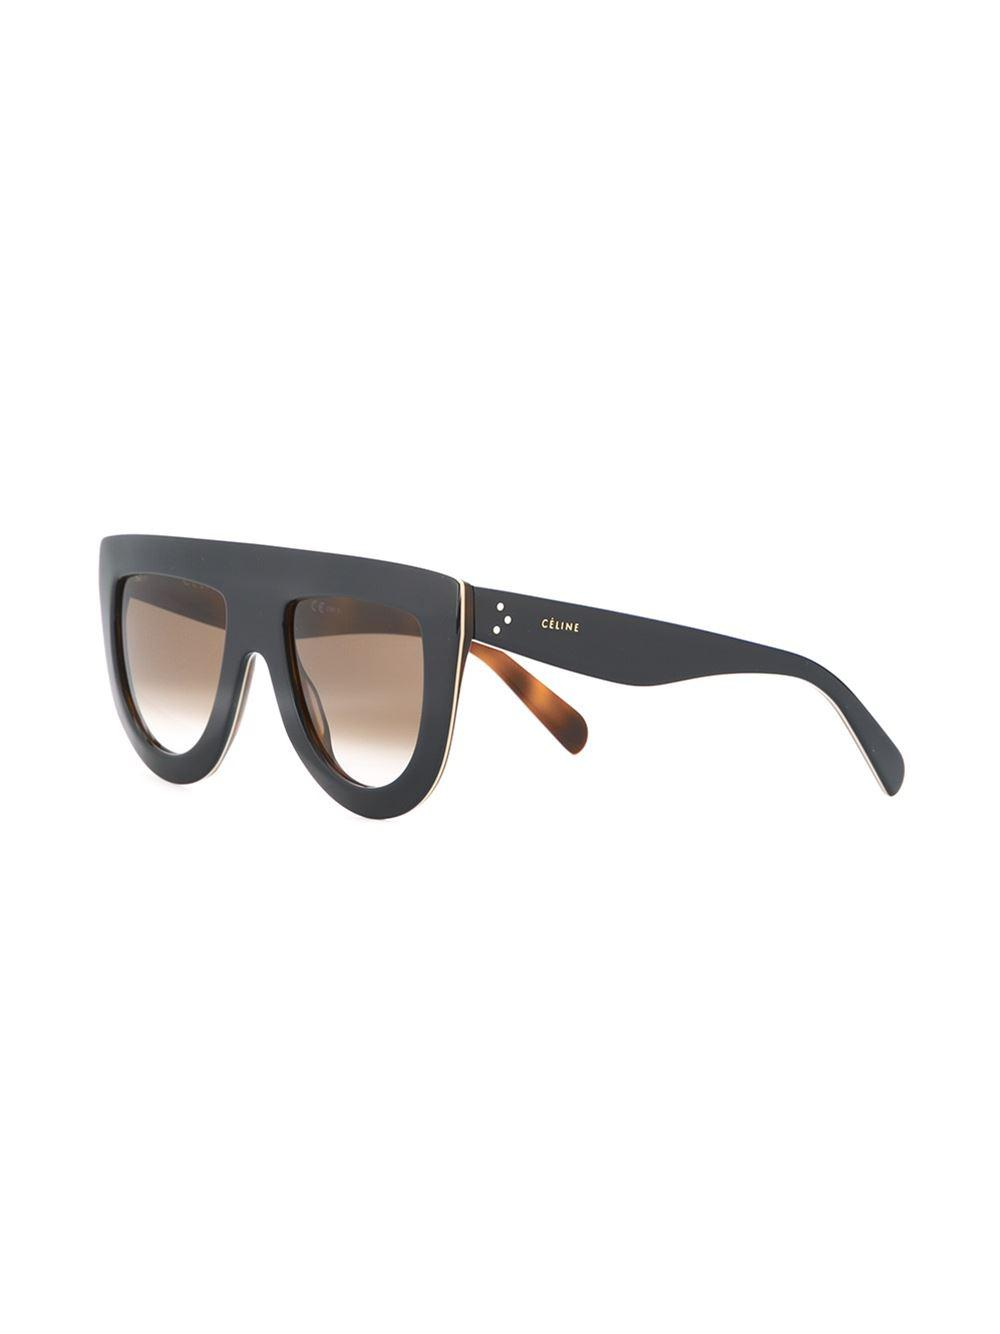 Celine Visor Frame Sunglasses in Blue (Black)